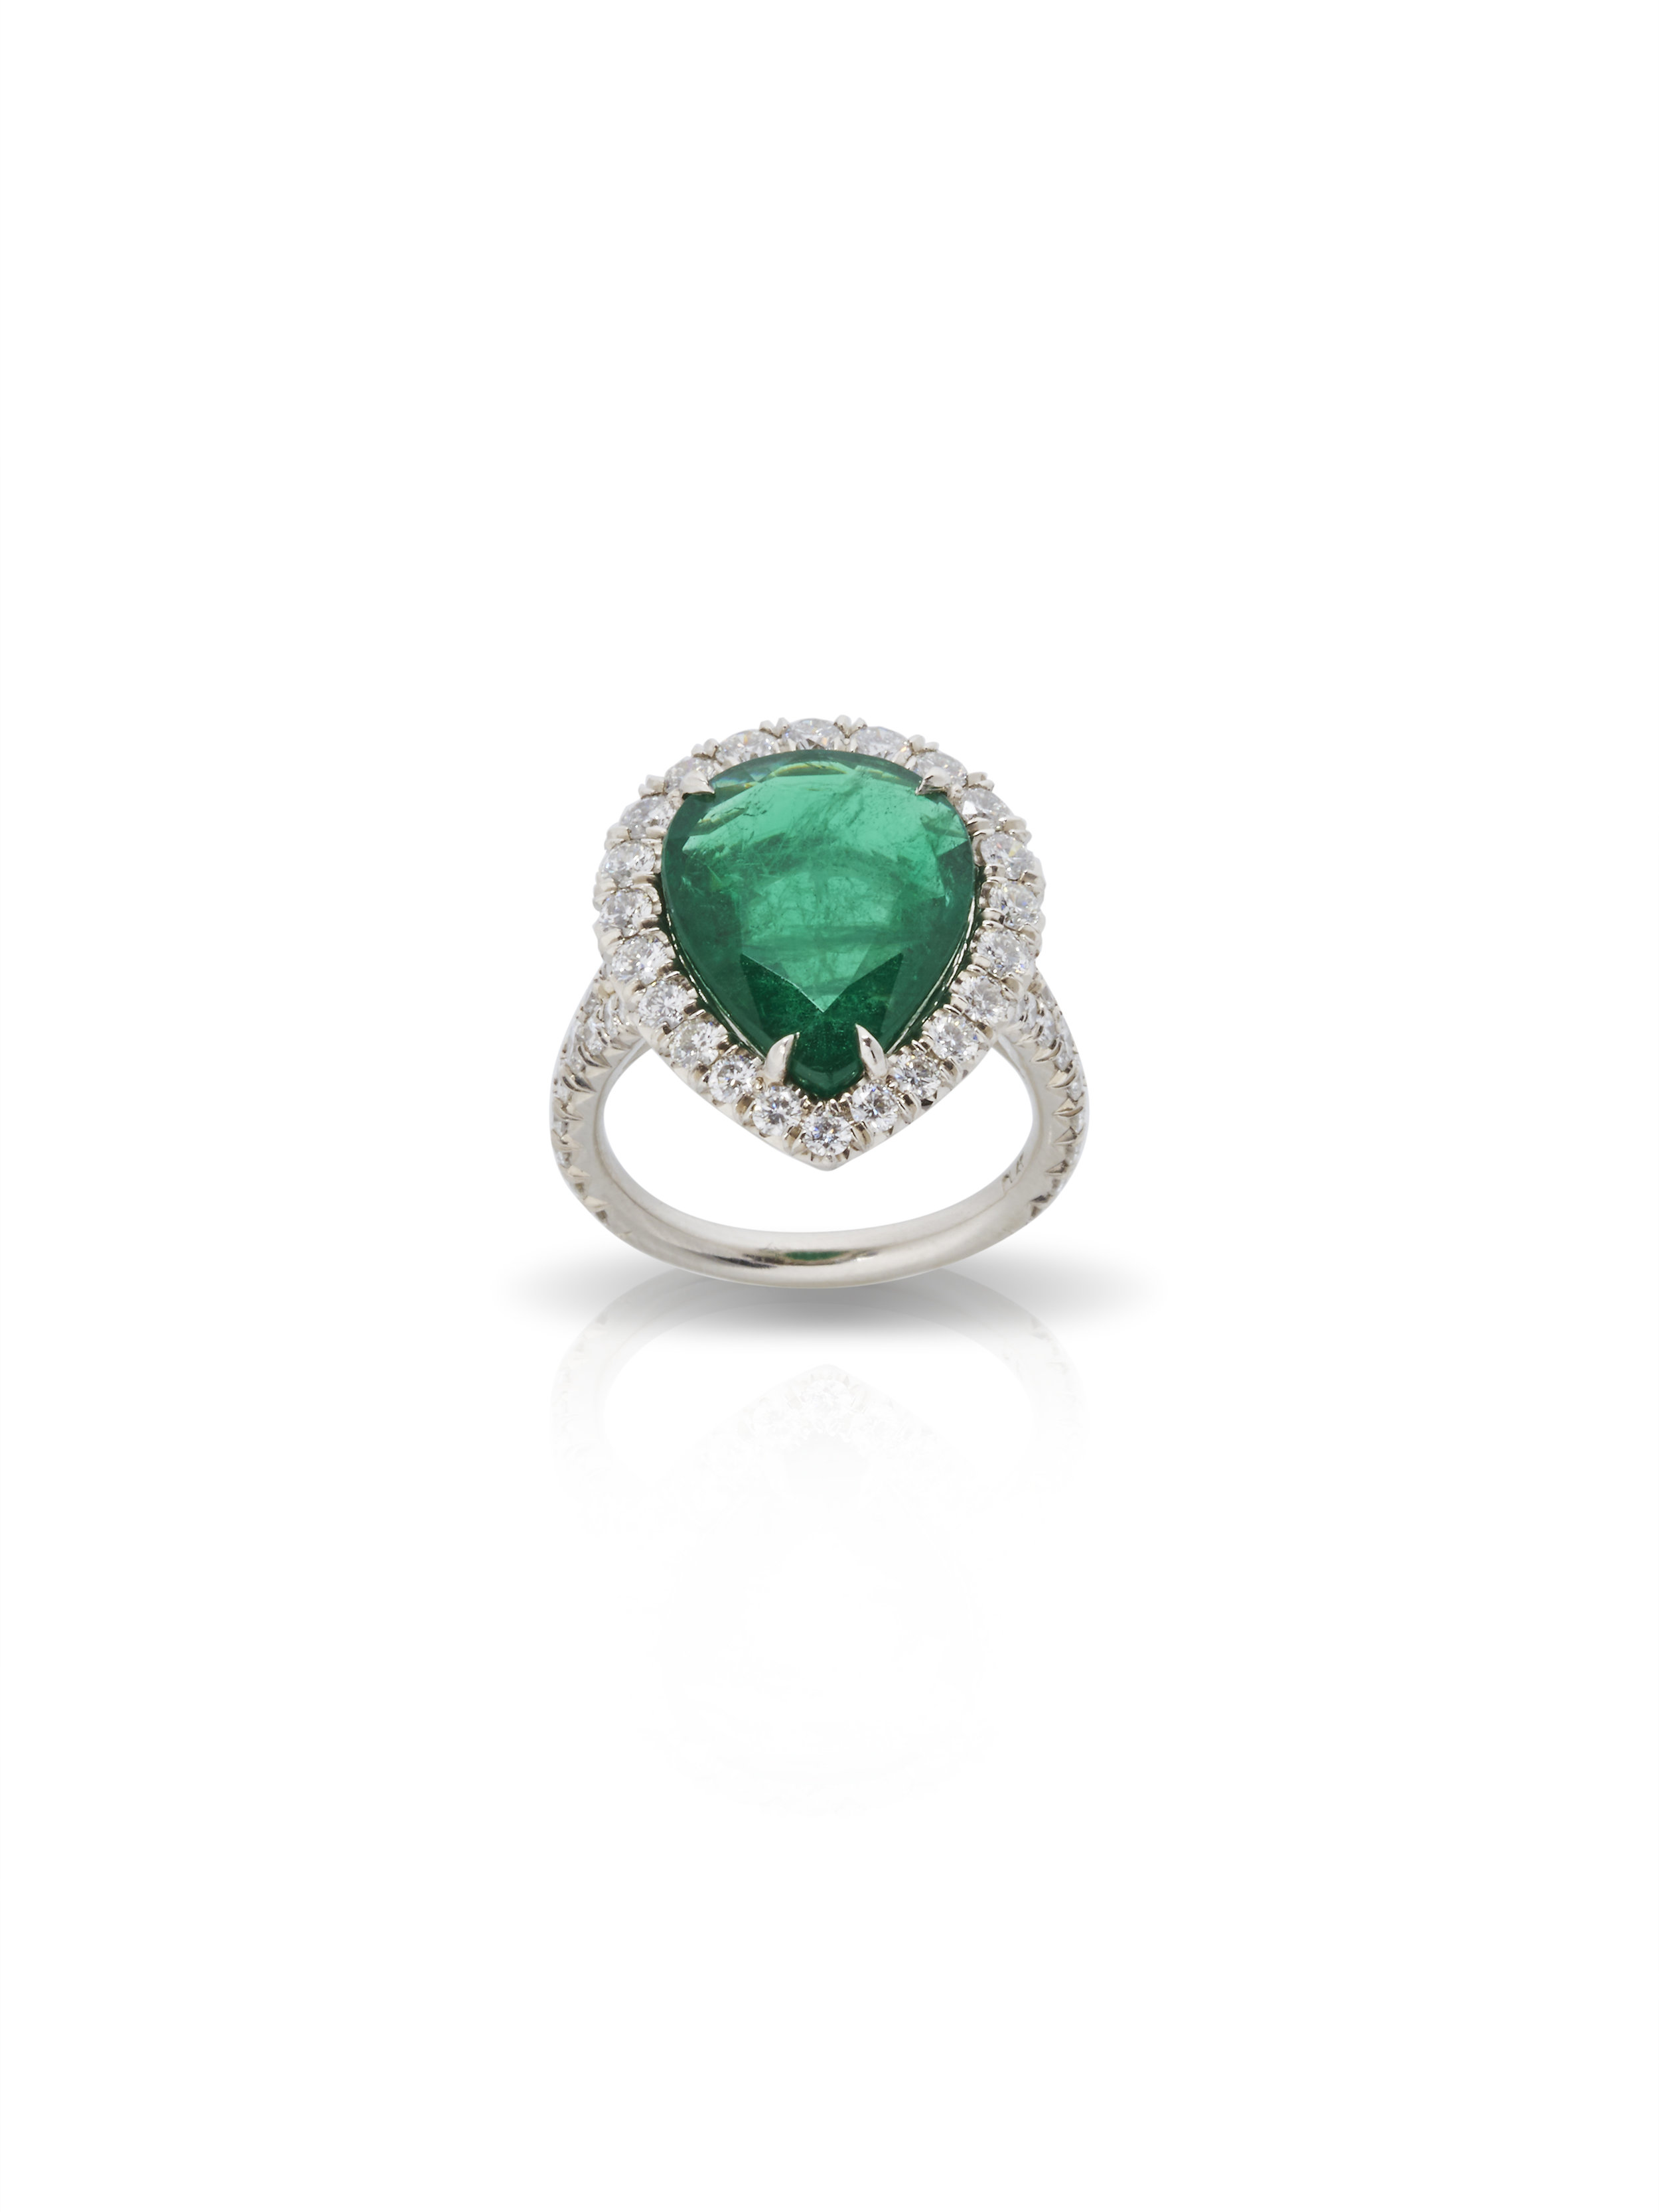 ASHLEY RING   1.81 CT OF DIAMONDS  5.67 CT OF EMERALD      Contact for inquiry